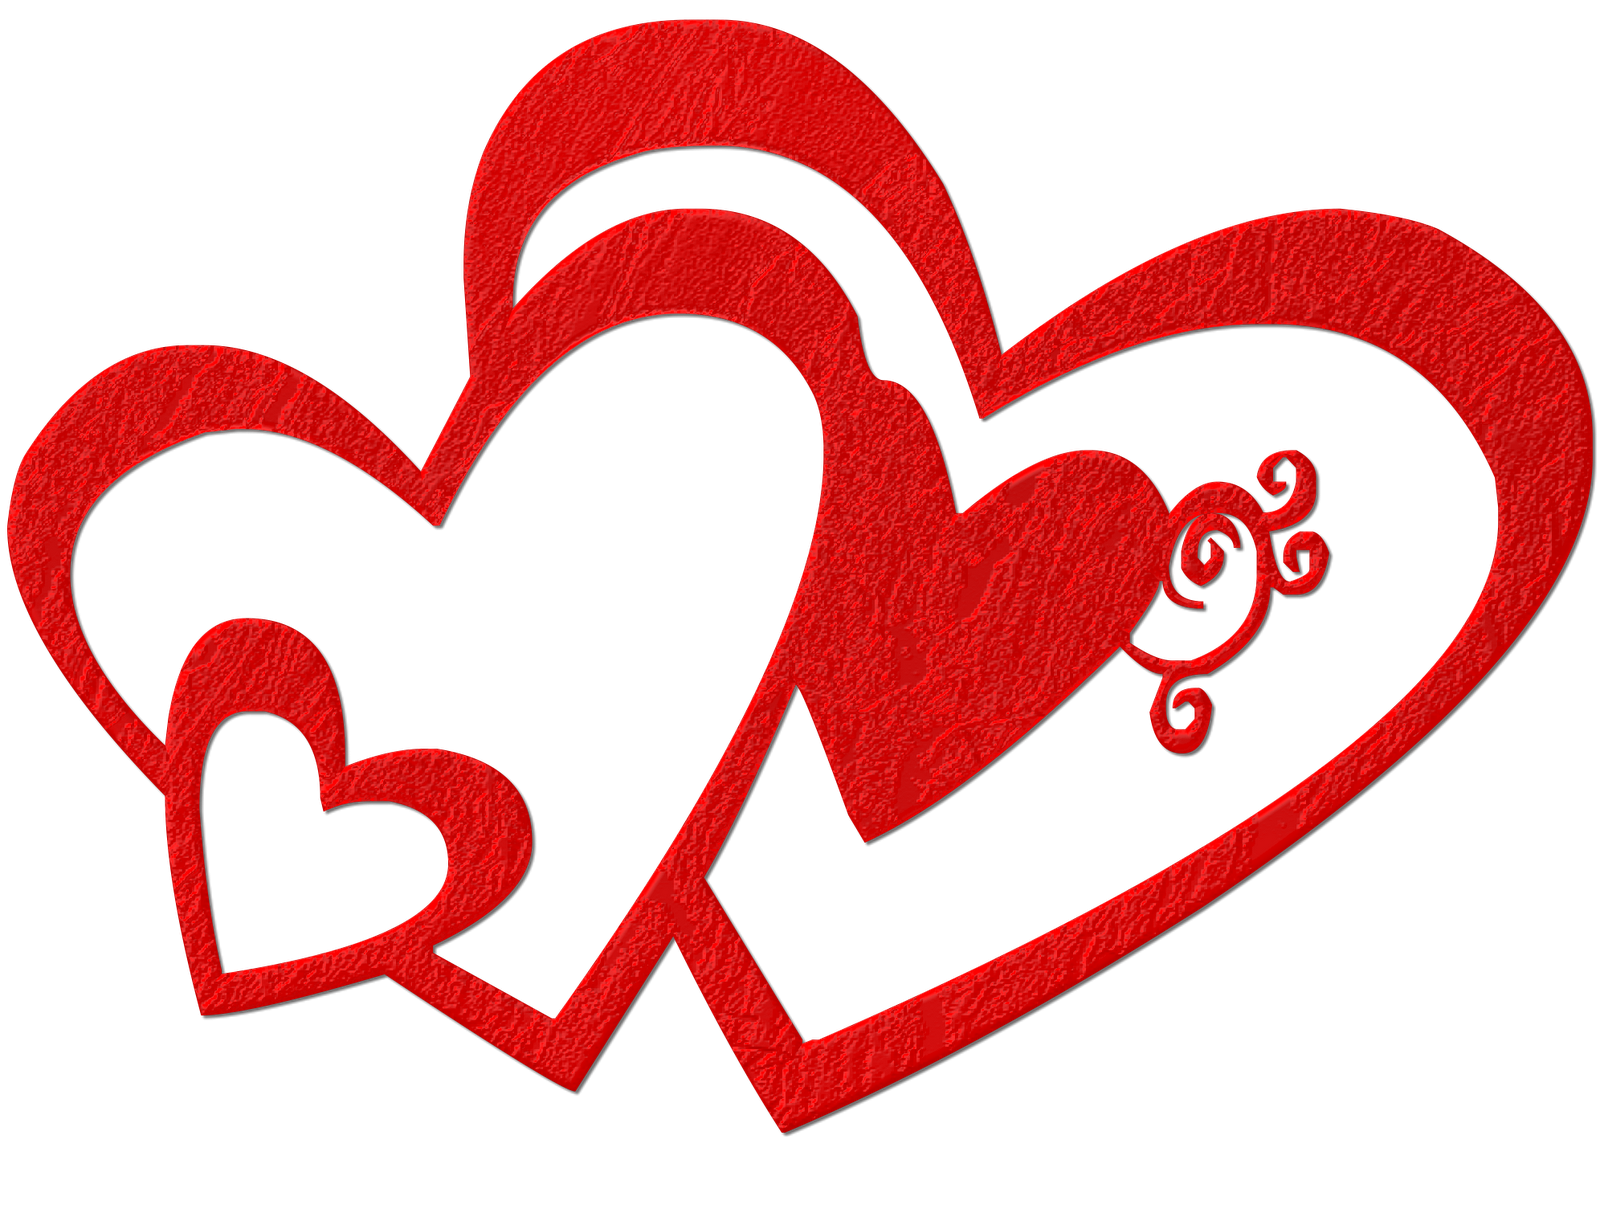 Valentines day clipart png. Double hearts